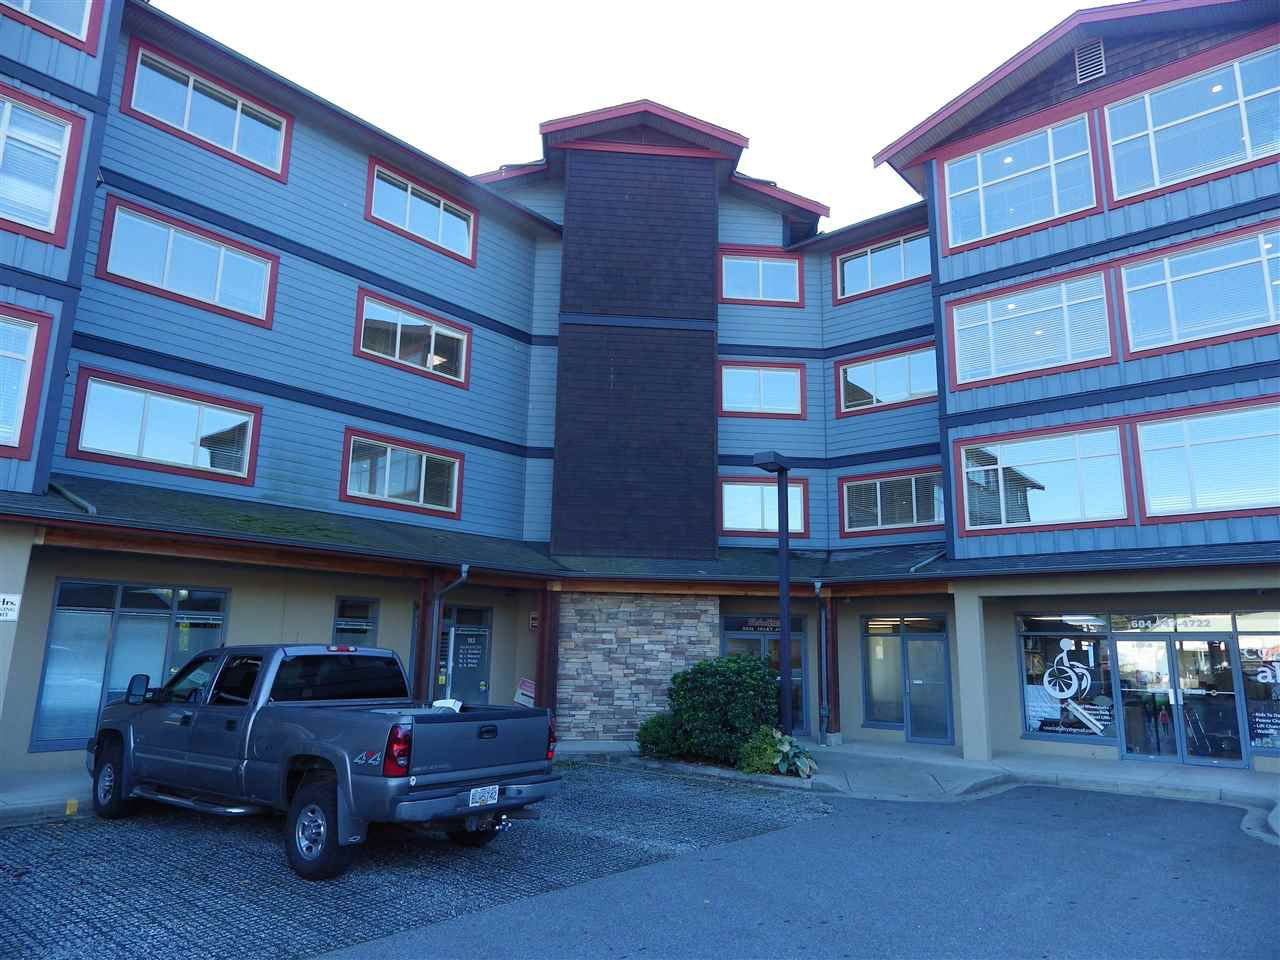 Main Photo: 405 5631 INLET Avenue in Sechelt: Sechelt District Condo for sale (Sunshine Coast)  : MLS®# R2311337